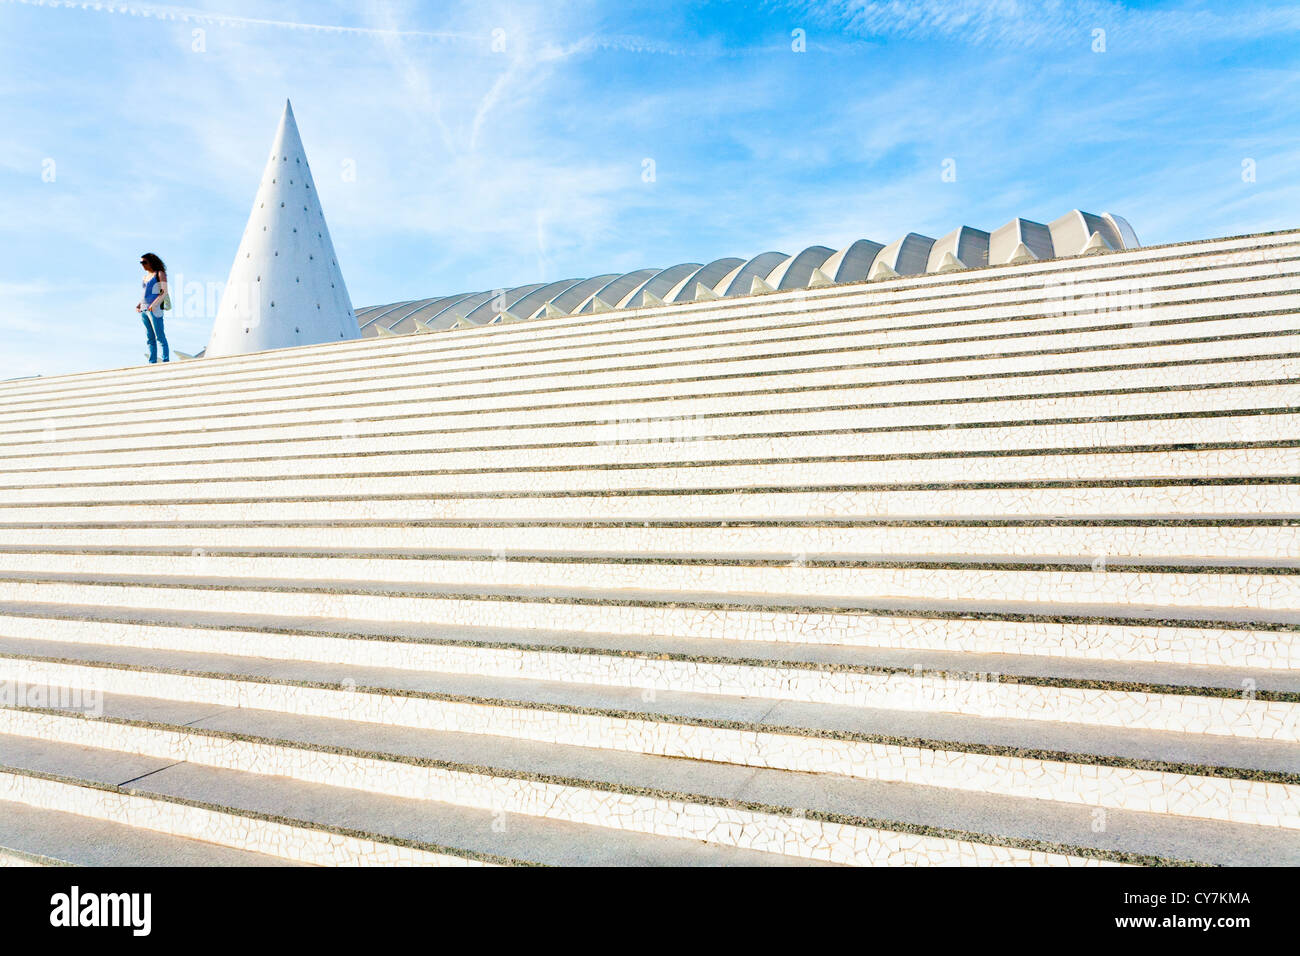 Elements of urban design in the City of Arts and Sciences in Valencia - Stock Image